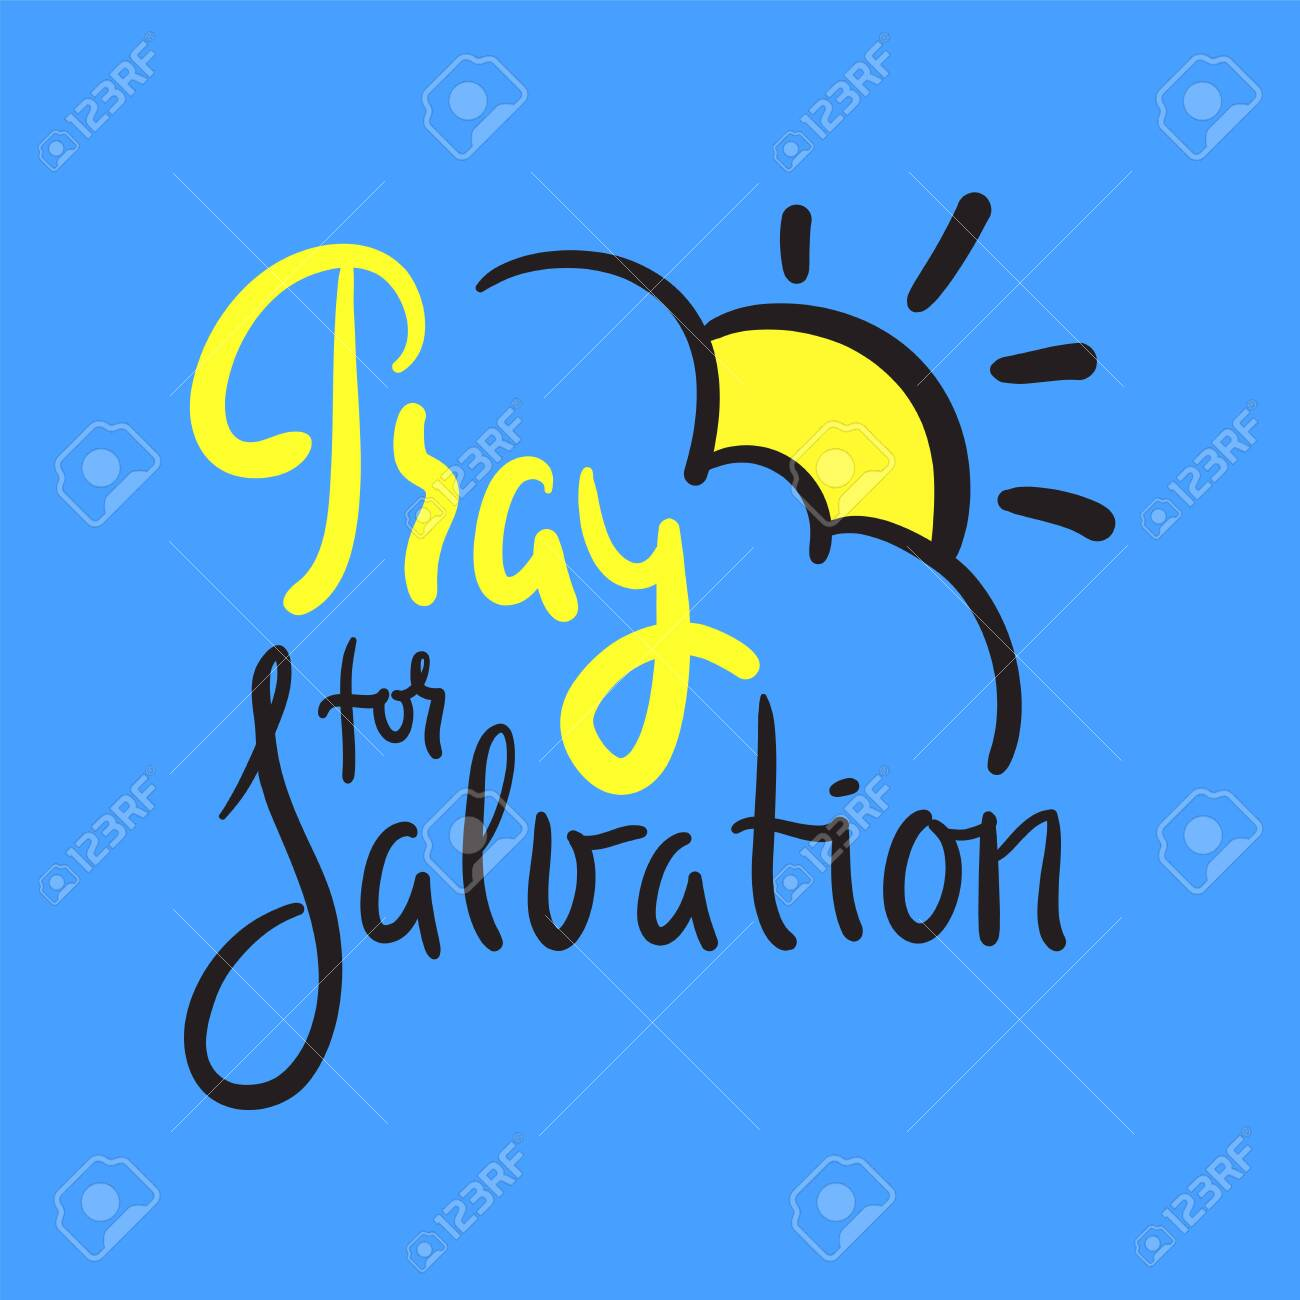 Pray for salvation - inspire motivational religious quote. Hand drawn beautiful lettering. Print for inspirational poster, t-shirt, bag, cups, card, flyer, sticker, badge. Cute funny vector writing - 151563776